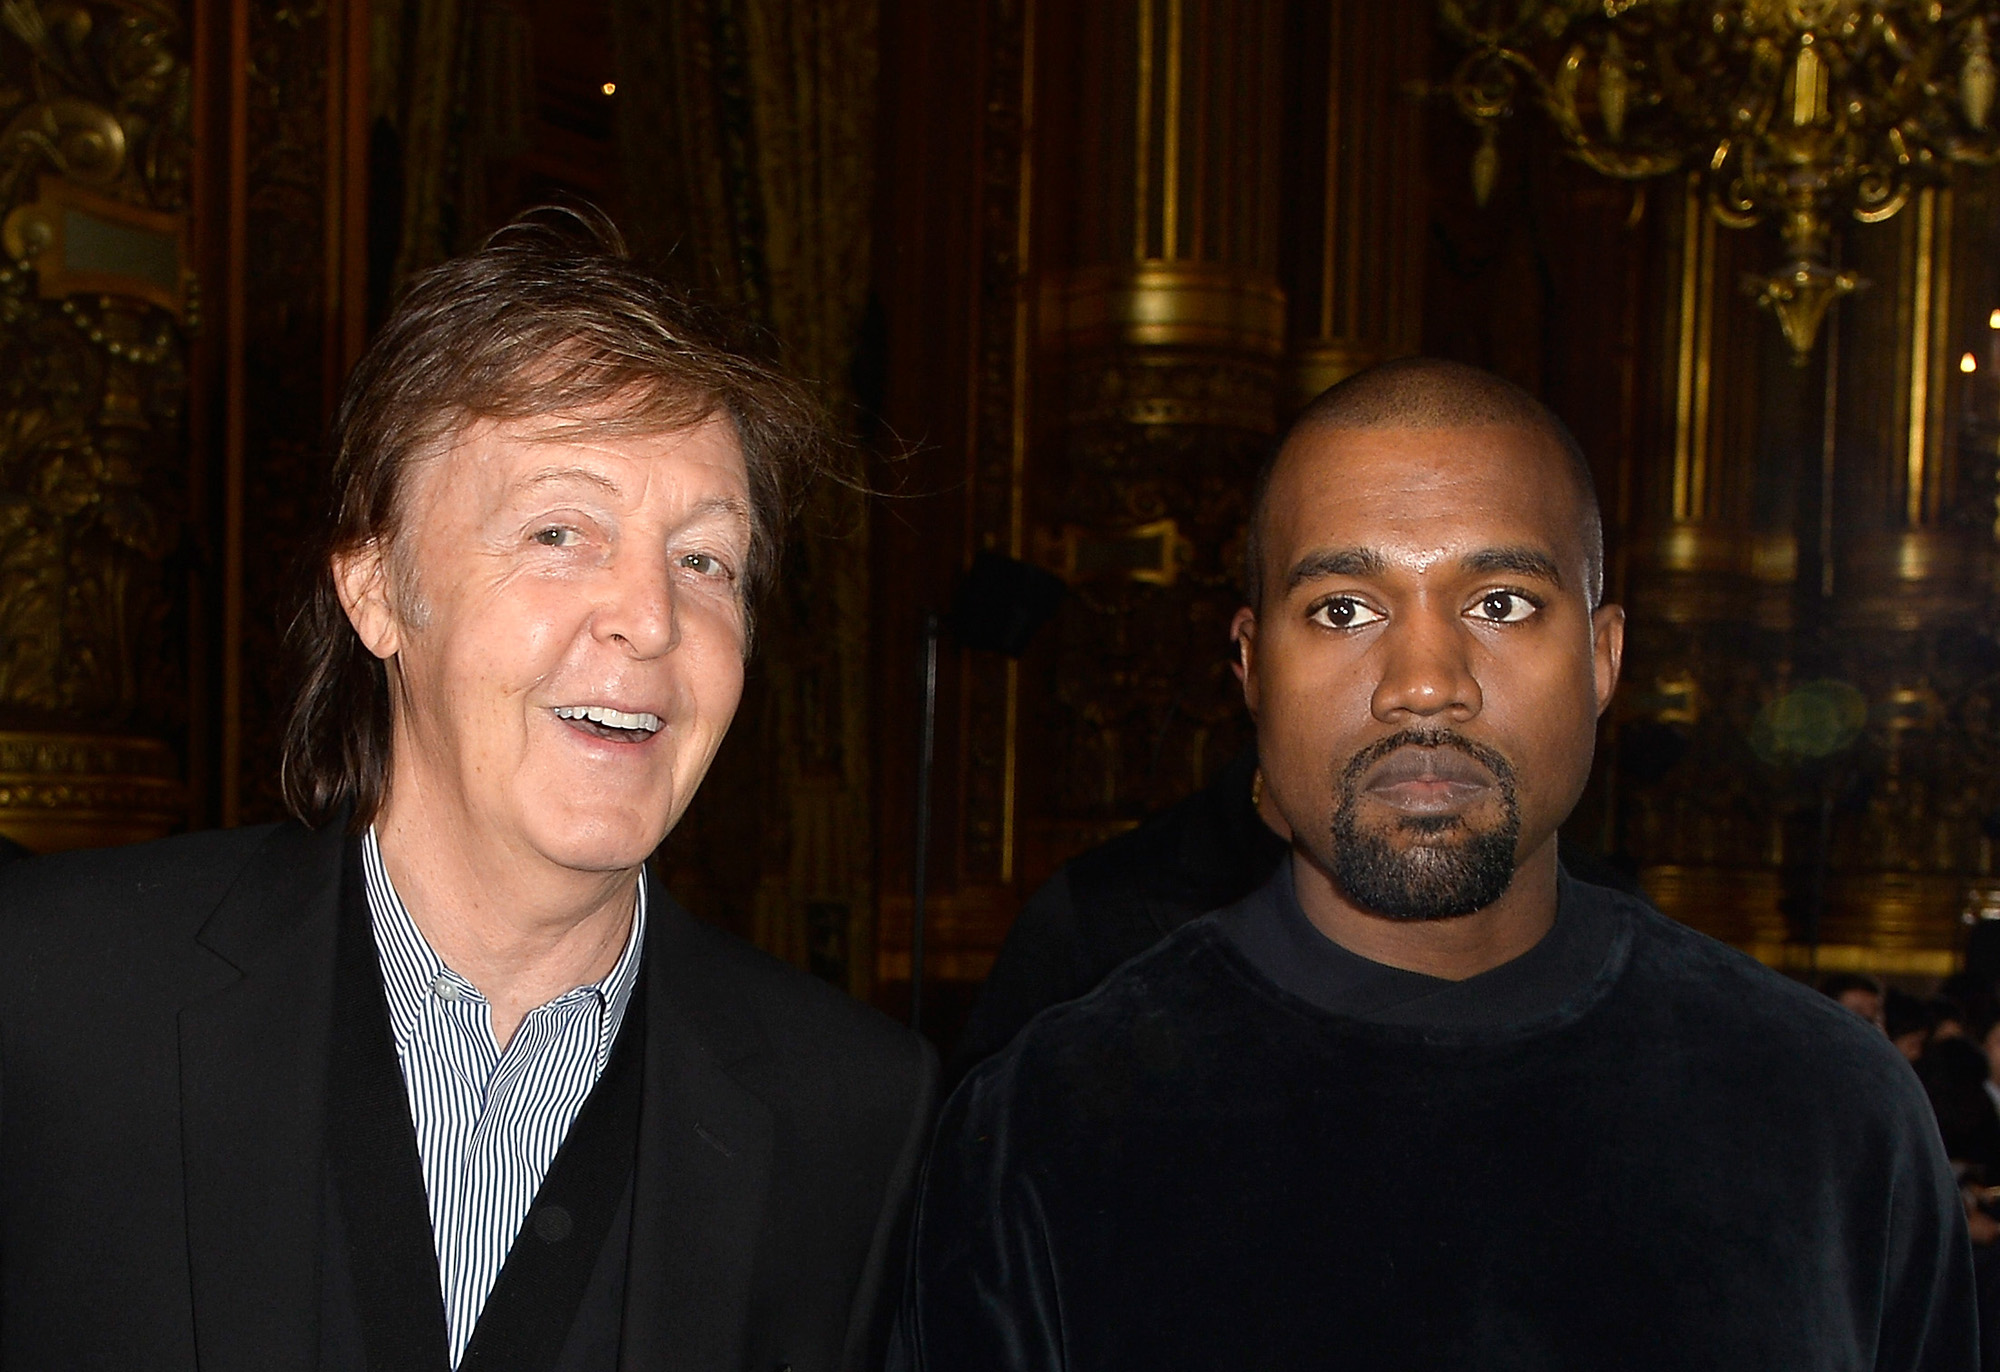 Paul McCartney and Kanye West attend the Stella McCartney show as part of the Paris Fashion Week Womenswear Fall/Winter 2015/2016 on March 9, 2015 in Paris, France.  (Photo by Pascal Le Segretain/Getty Images)